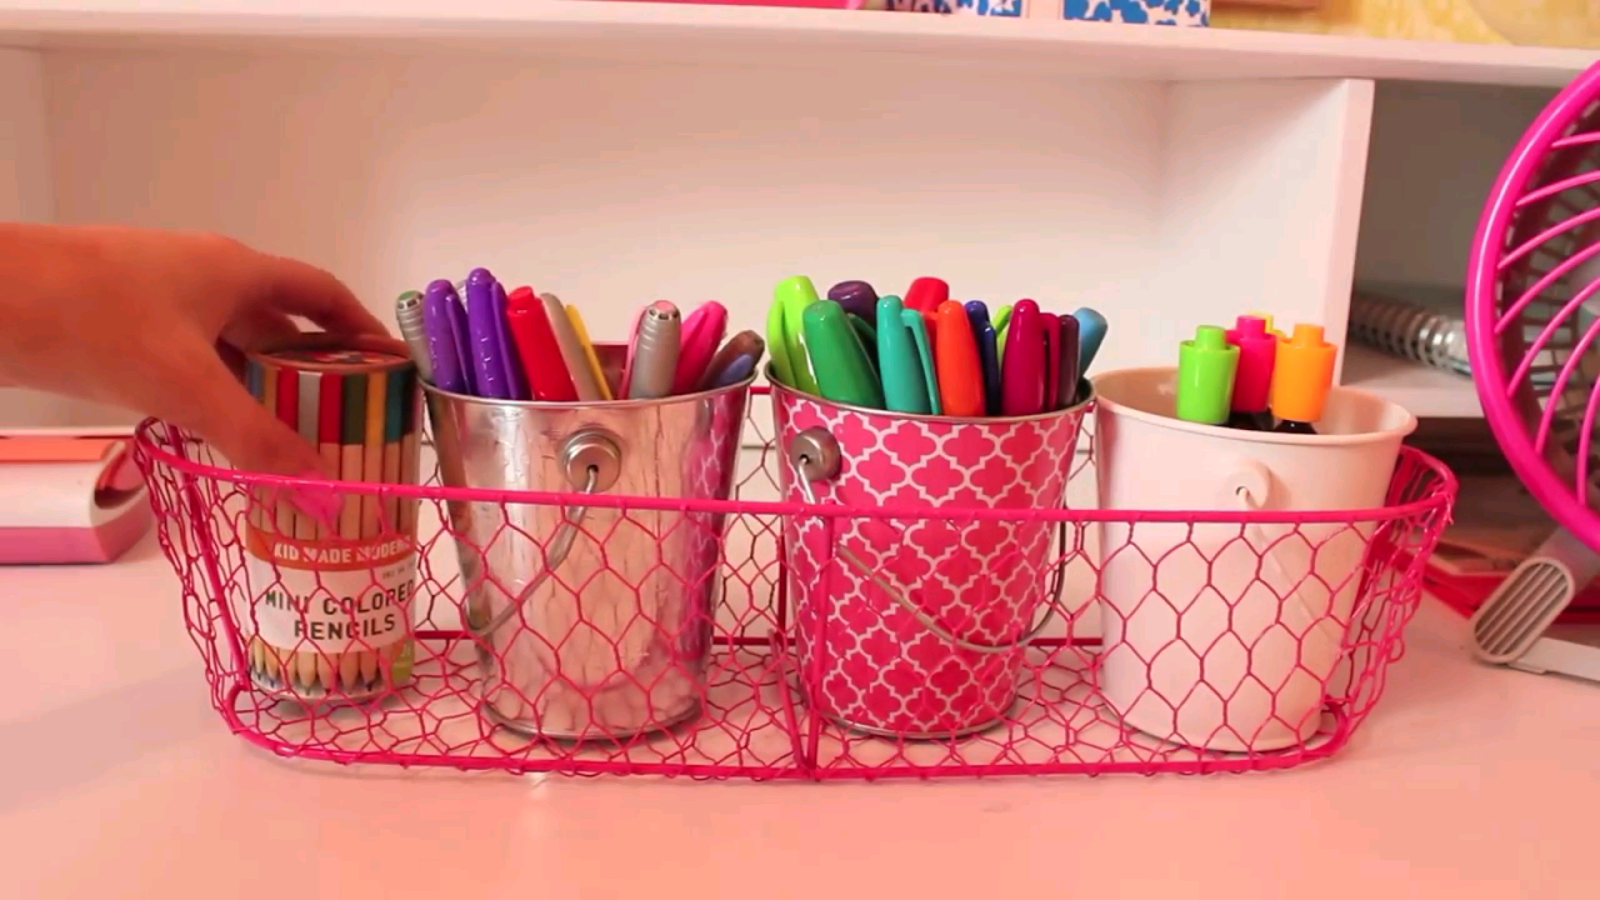 Inexpensive desk organizer